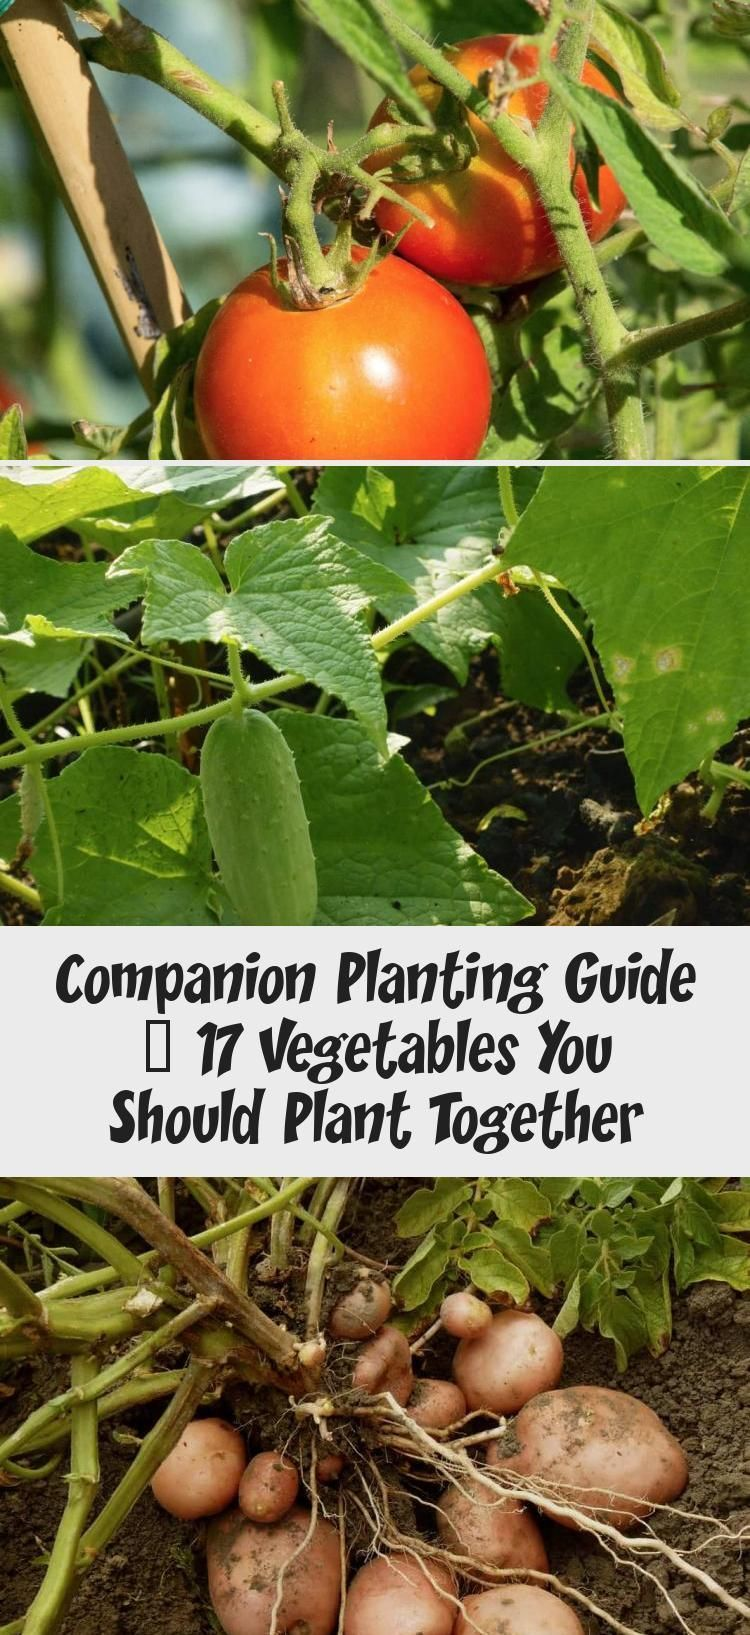 d45331d134ef49d8ca9055e1f4c814a7 - The Vegetable Gardener's Guide To Permaculture